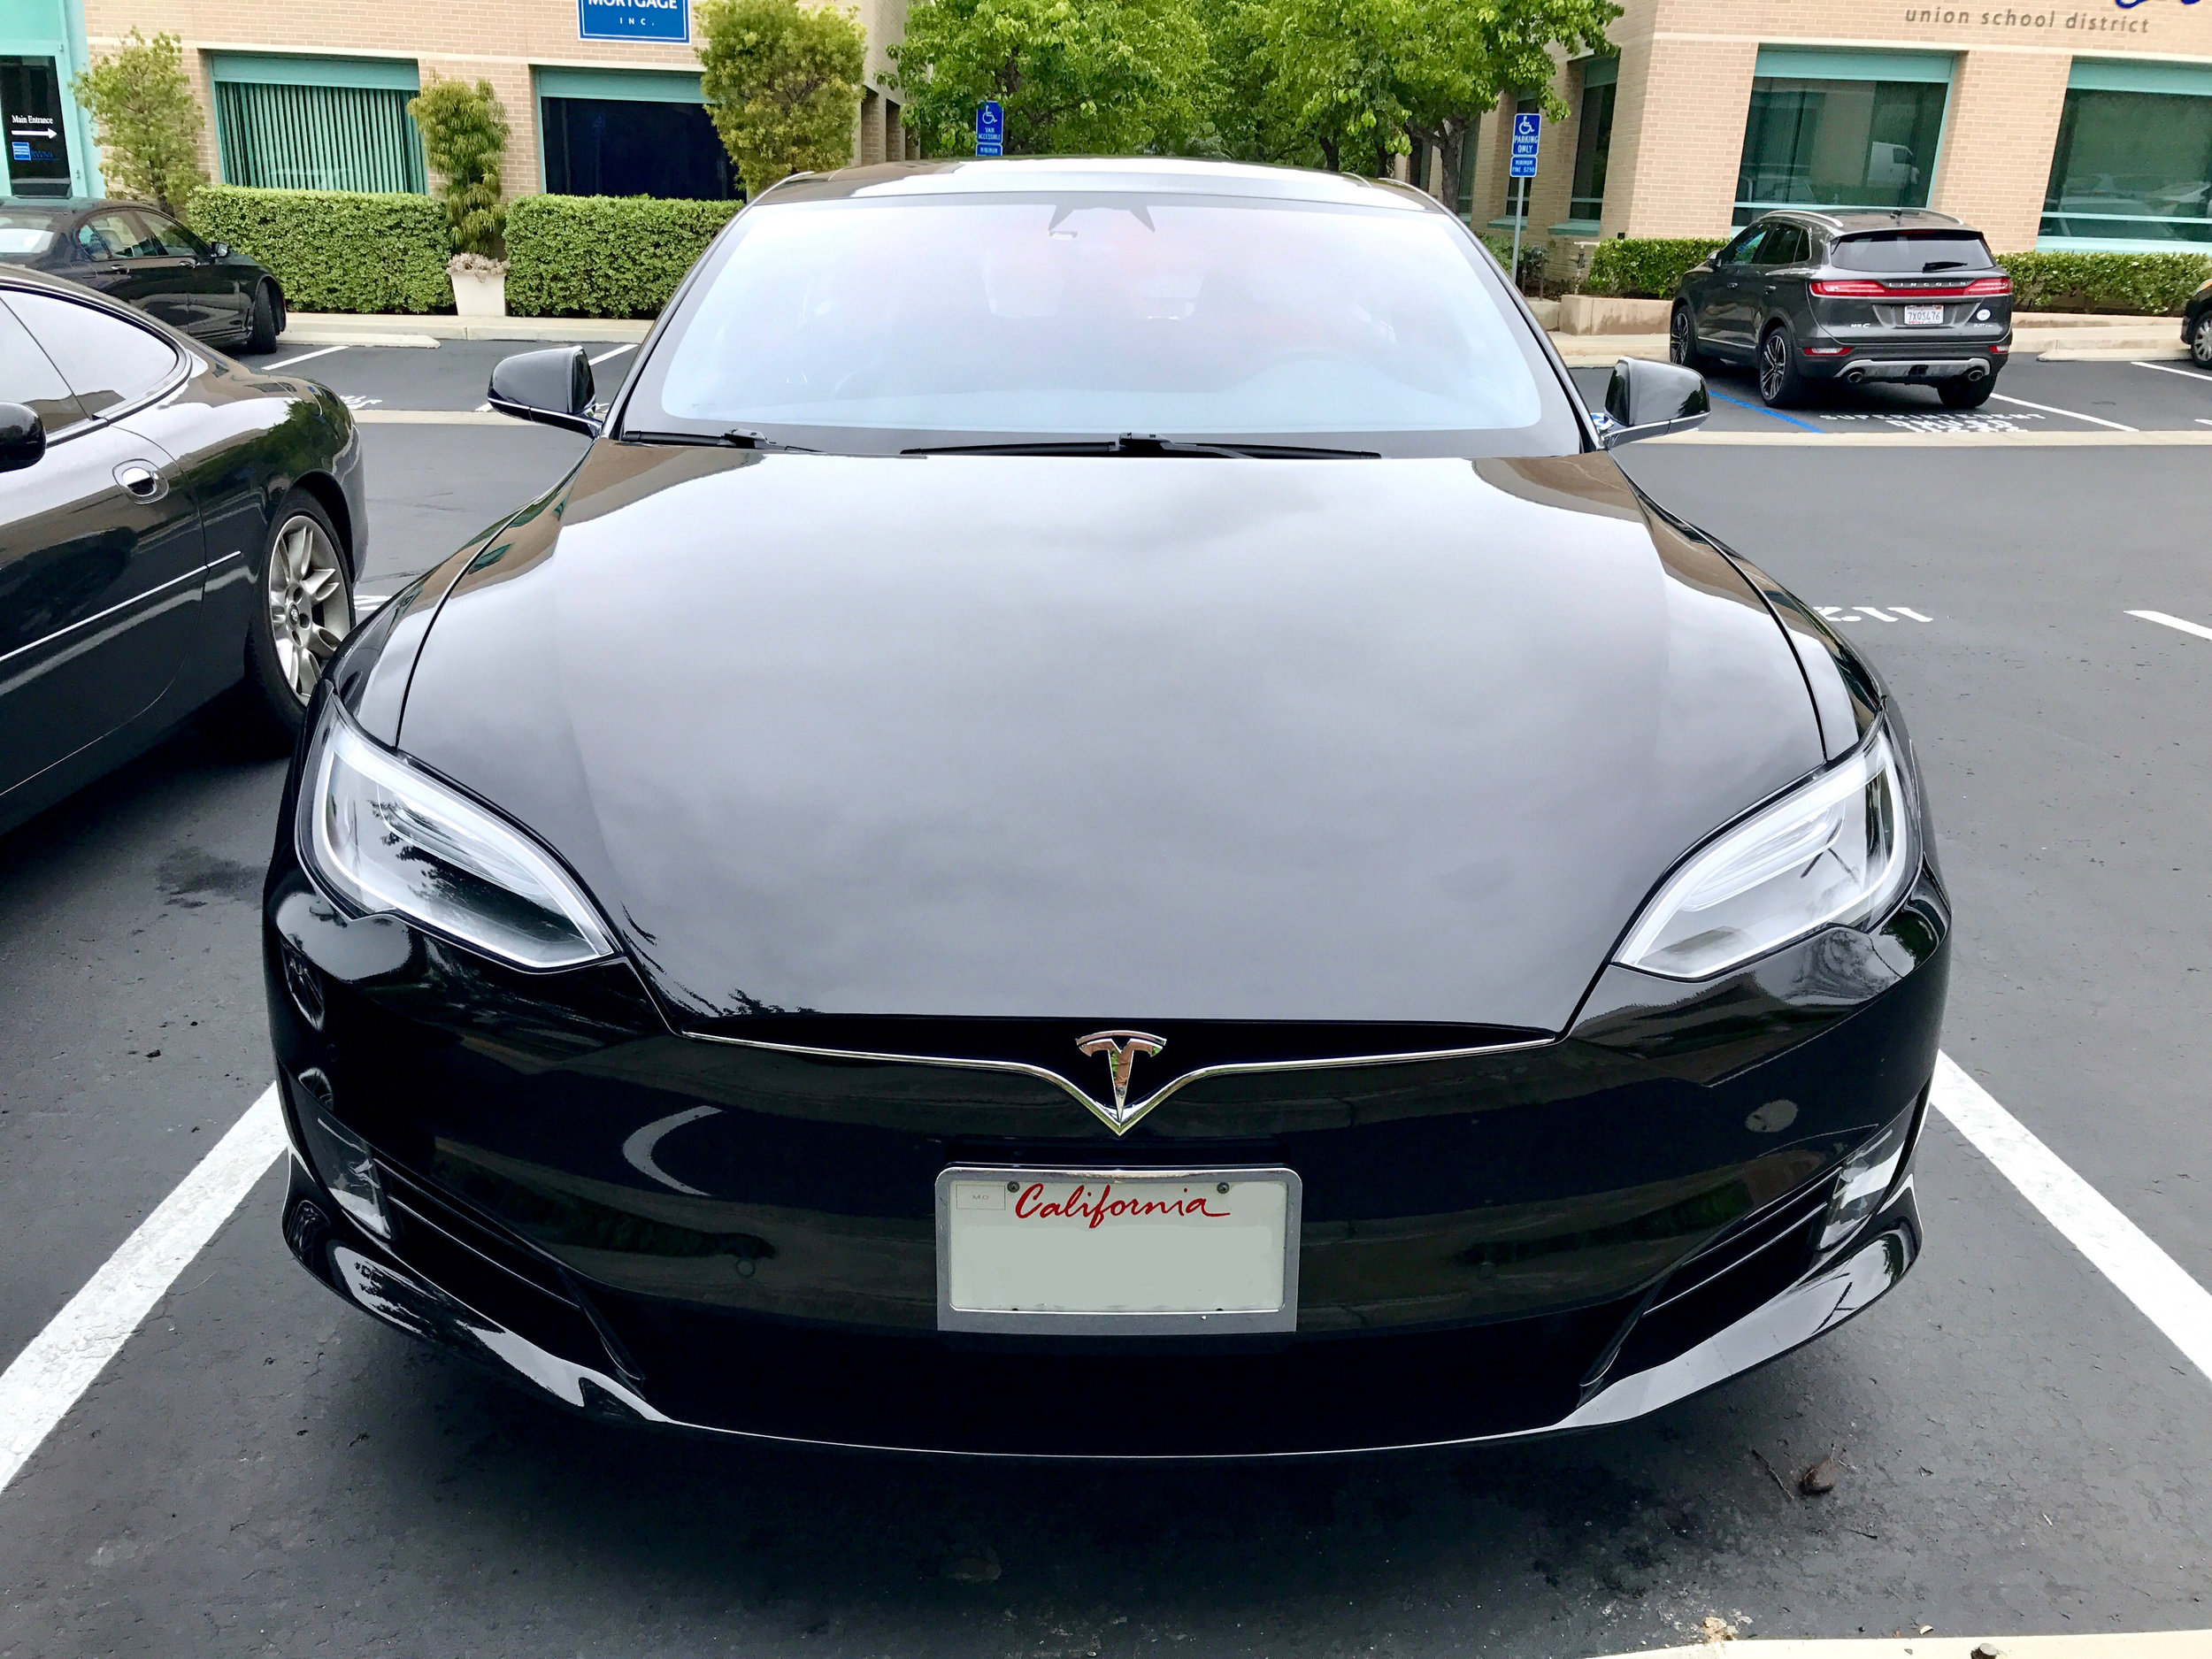 New front-end of the 2017 Model S